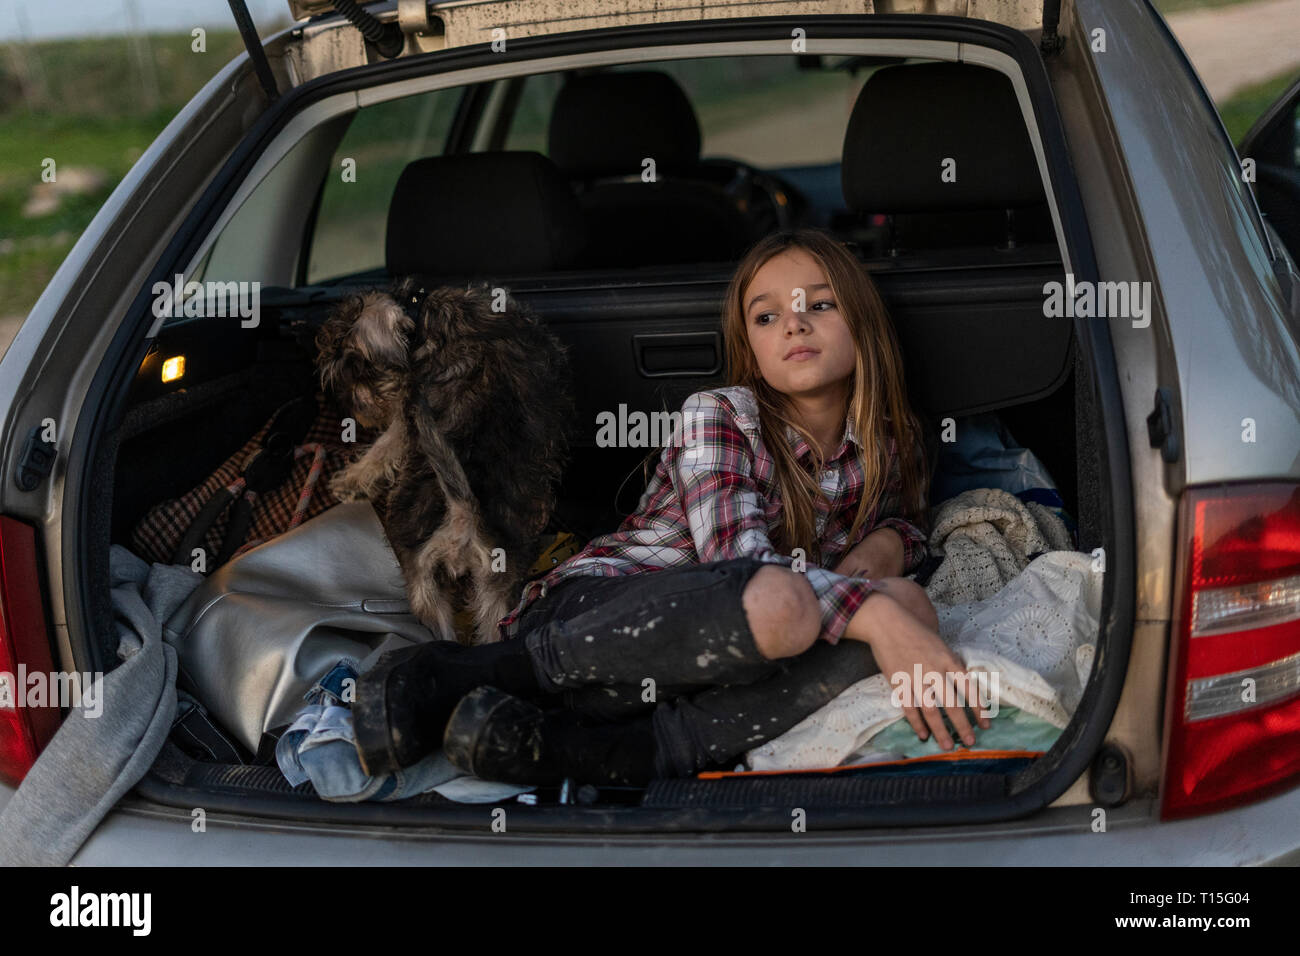 Girl waiting with her dog in parked car in the evening - Stock Image